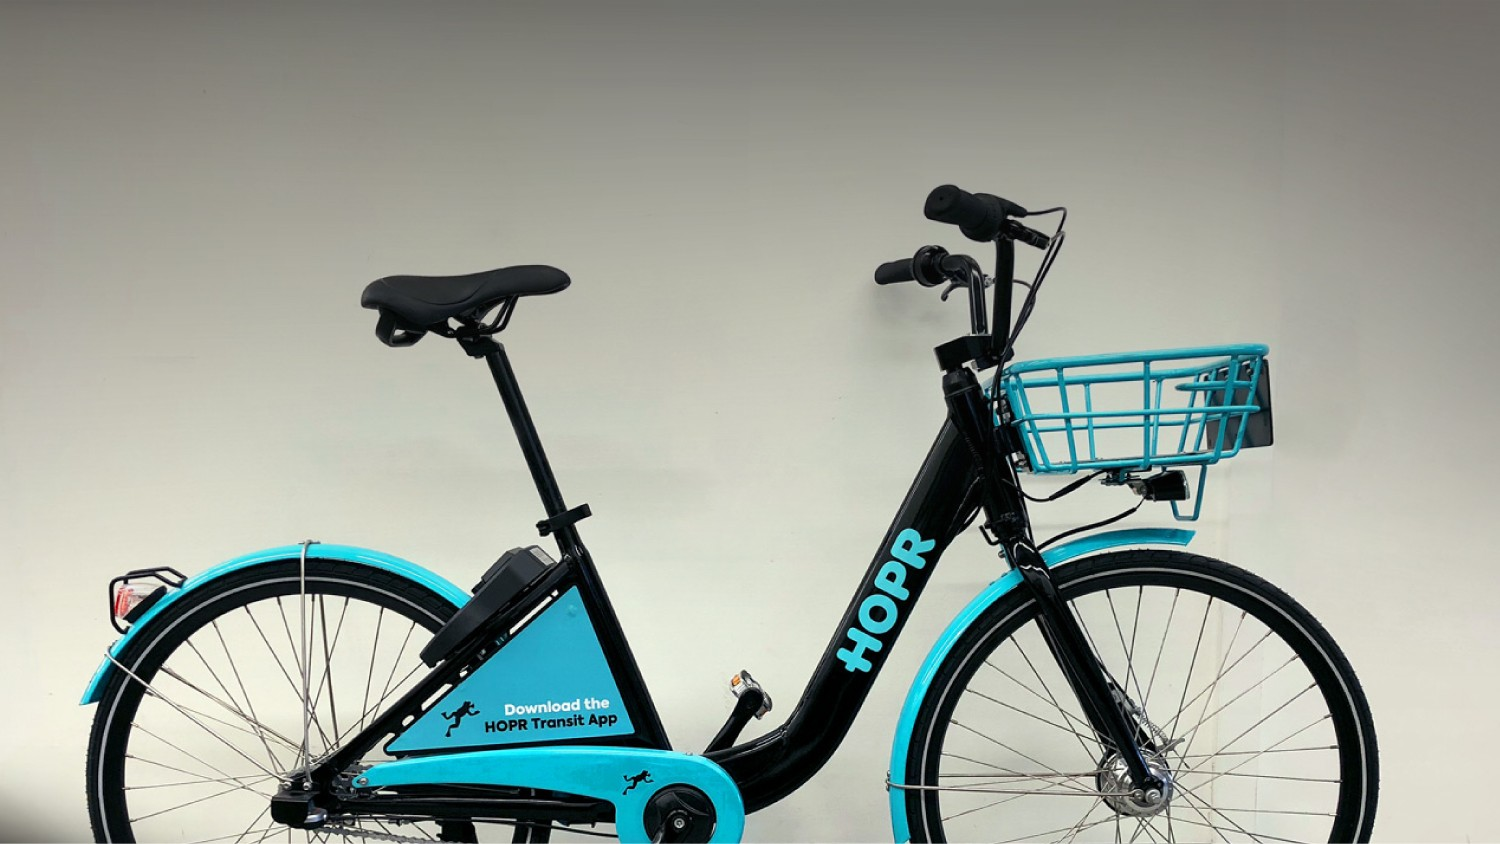 The HOPR 3-Speed allows for quick and easy hops to get you where you need to go. It's a durable pedal-powered solution for most of your bike sharing needs.